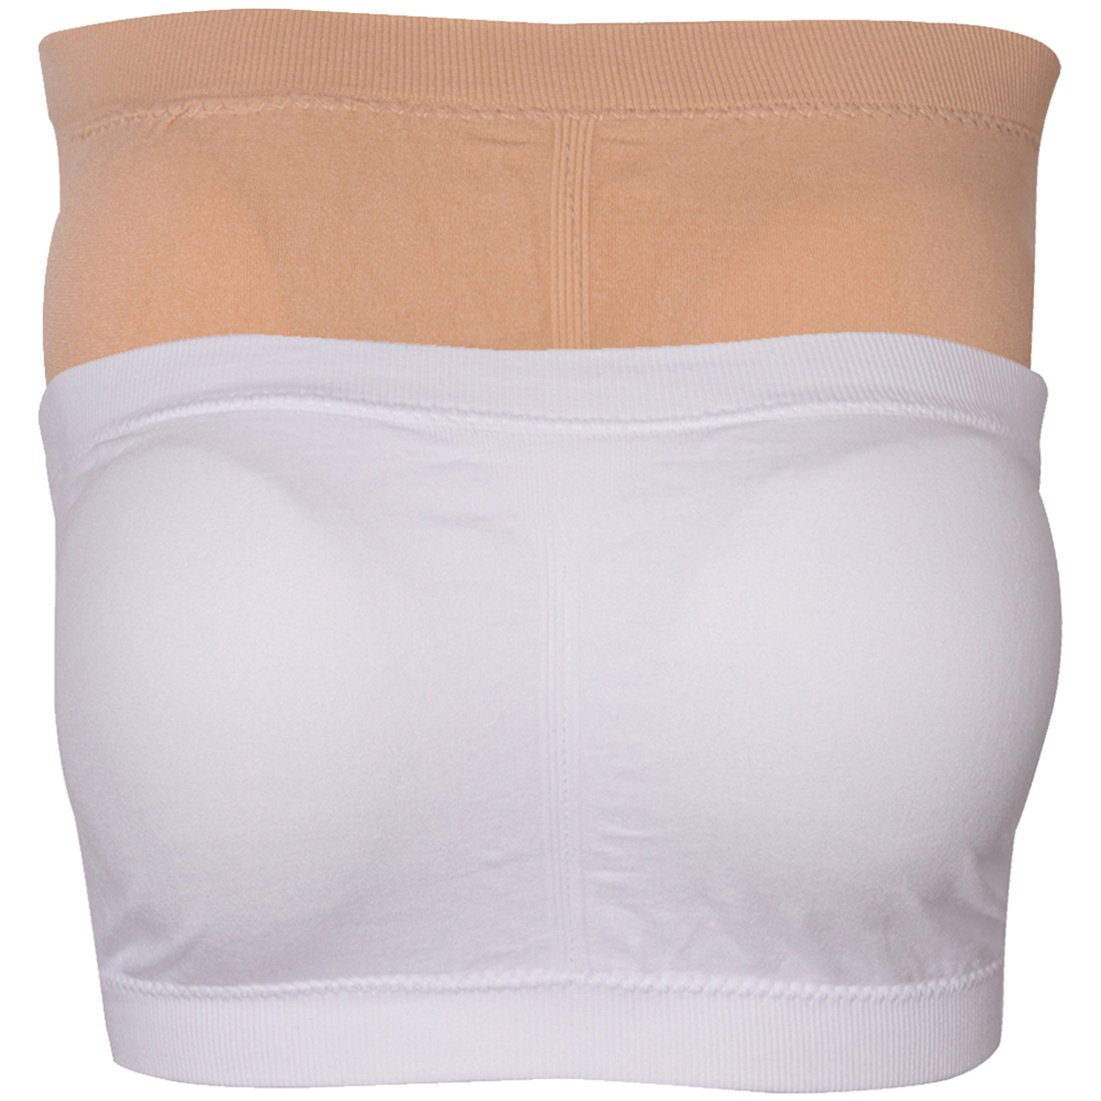 Elliscold Women's Basic Seamless Tube Top Padded Bras Stretch Strapless Bandeau Bra 1-3 Pack